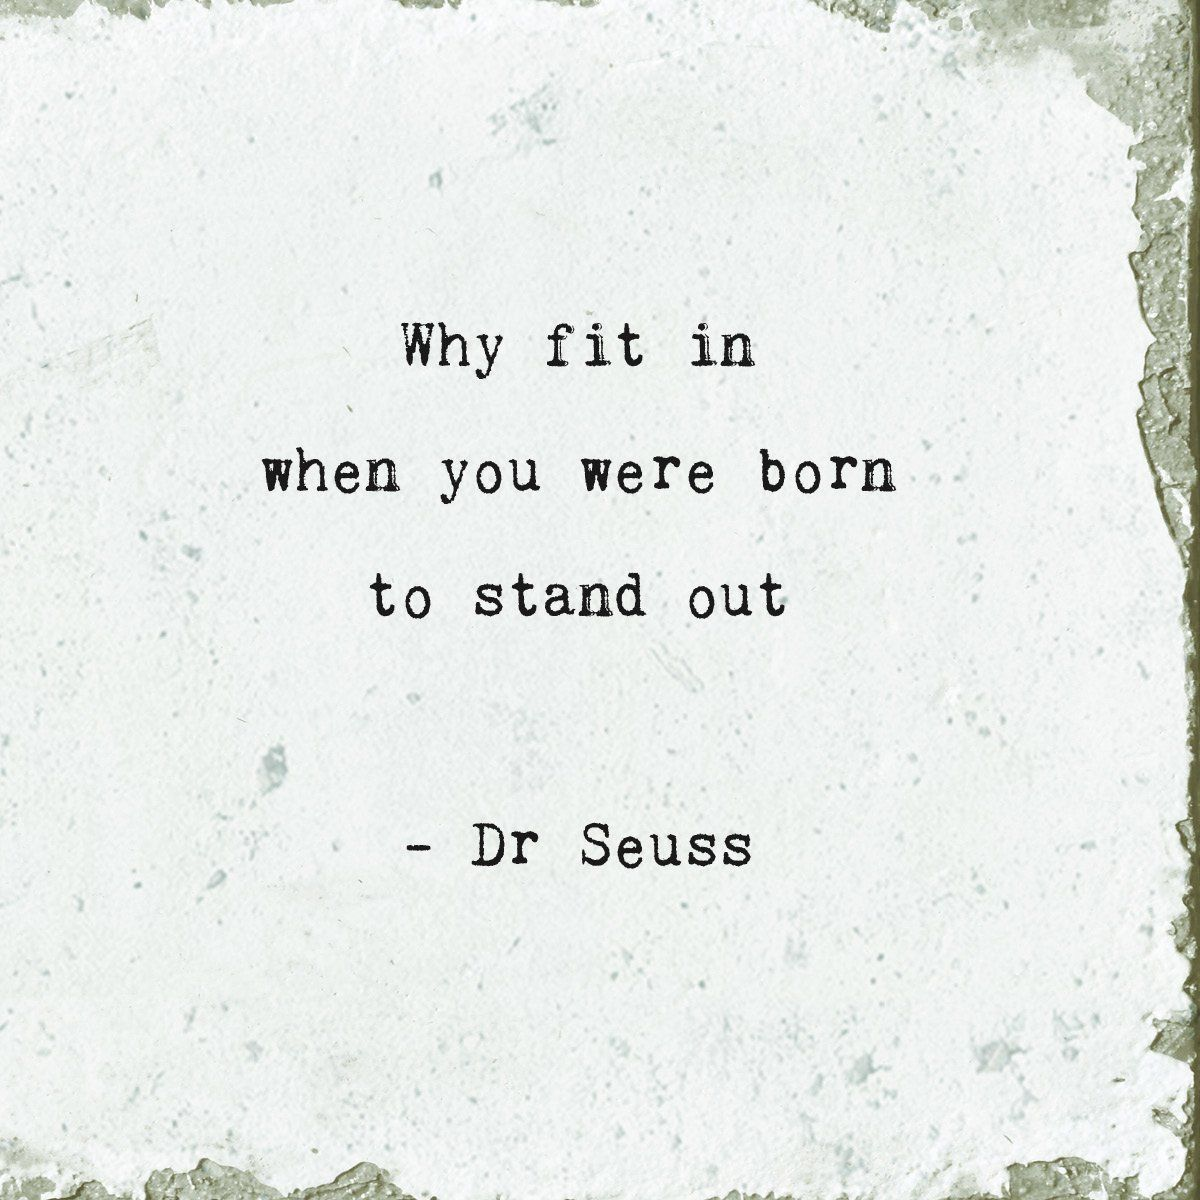 Why Fit In (Dr. Seuss) Marble Coaster